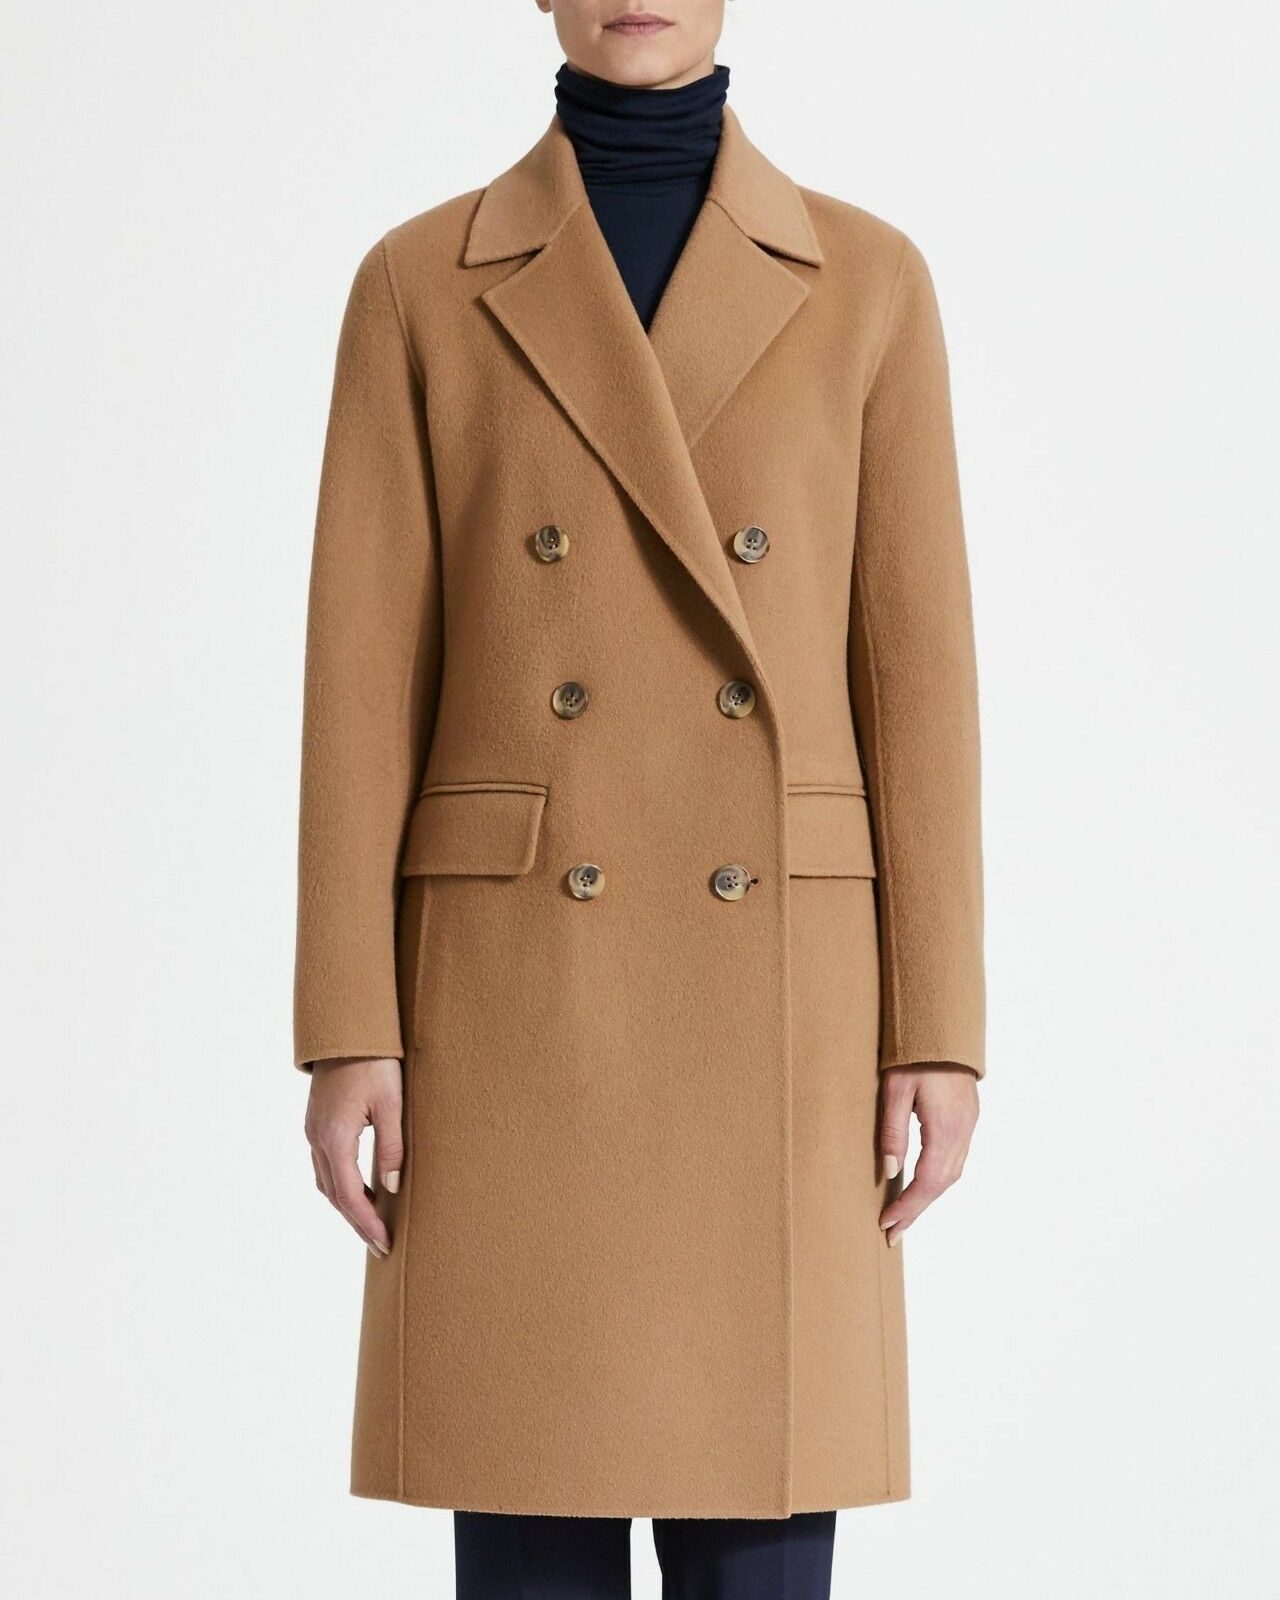 NWT Theory New Divide Wool & Cashmere City Coat Dark Chestnut Size S  795